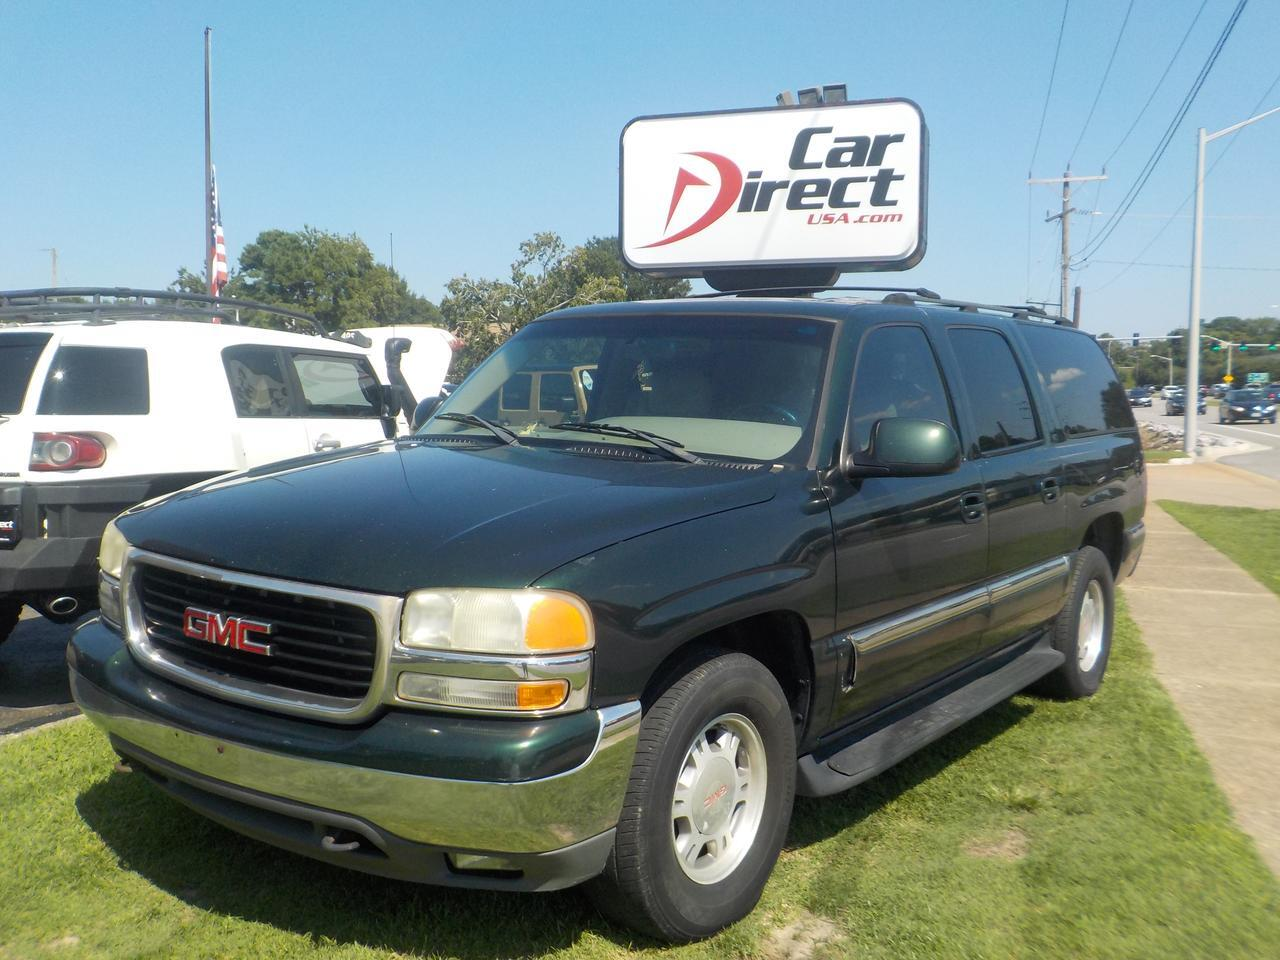 2001 GMC Yukon XL WHOLESALE TO THE PUBLIC! GET THIS DEAL BEFORE THIS 2001 GMC YUKON GOES TO AUCTION!